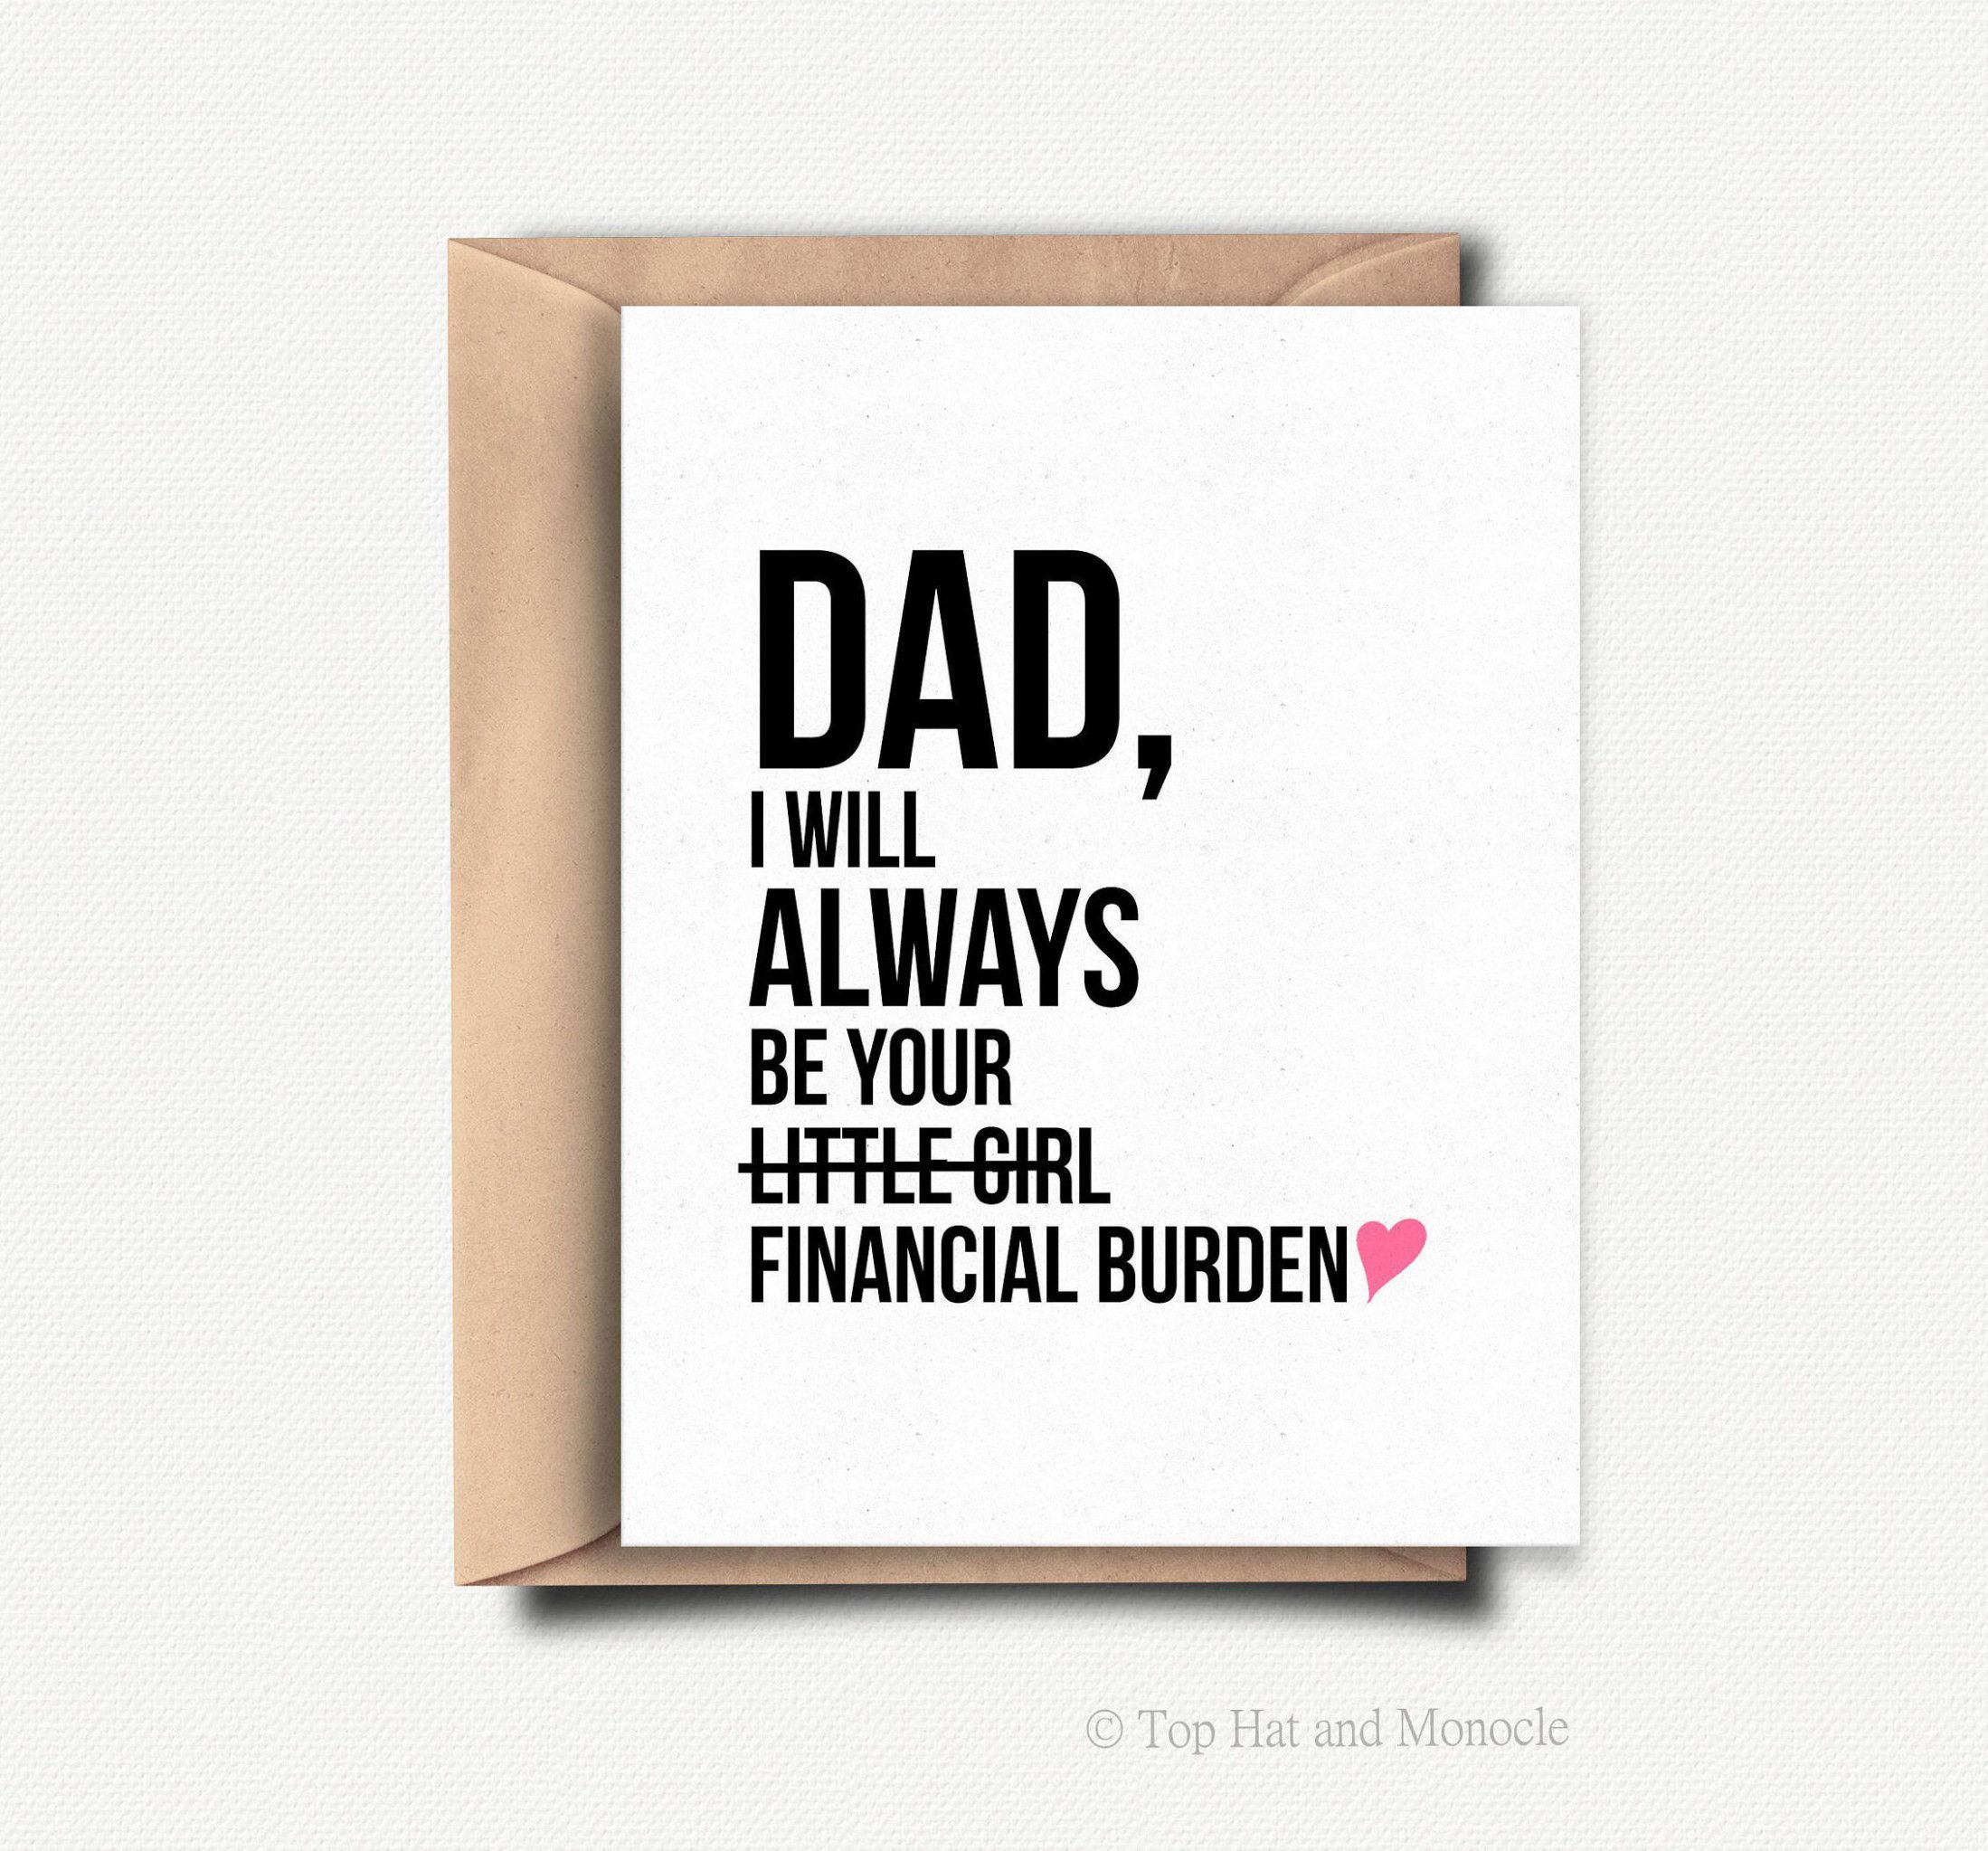 3 Best Birthday Card Ideas For Dad From Daughter  Dad birthday